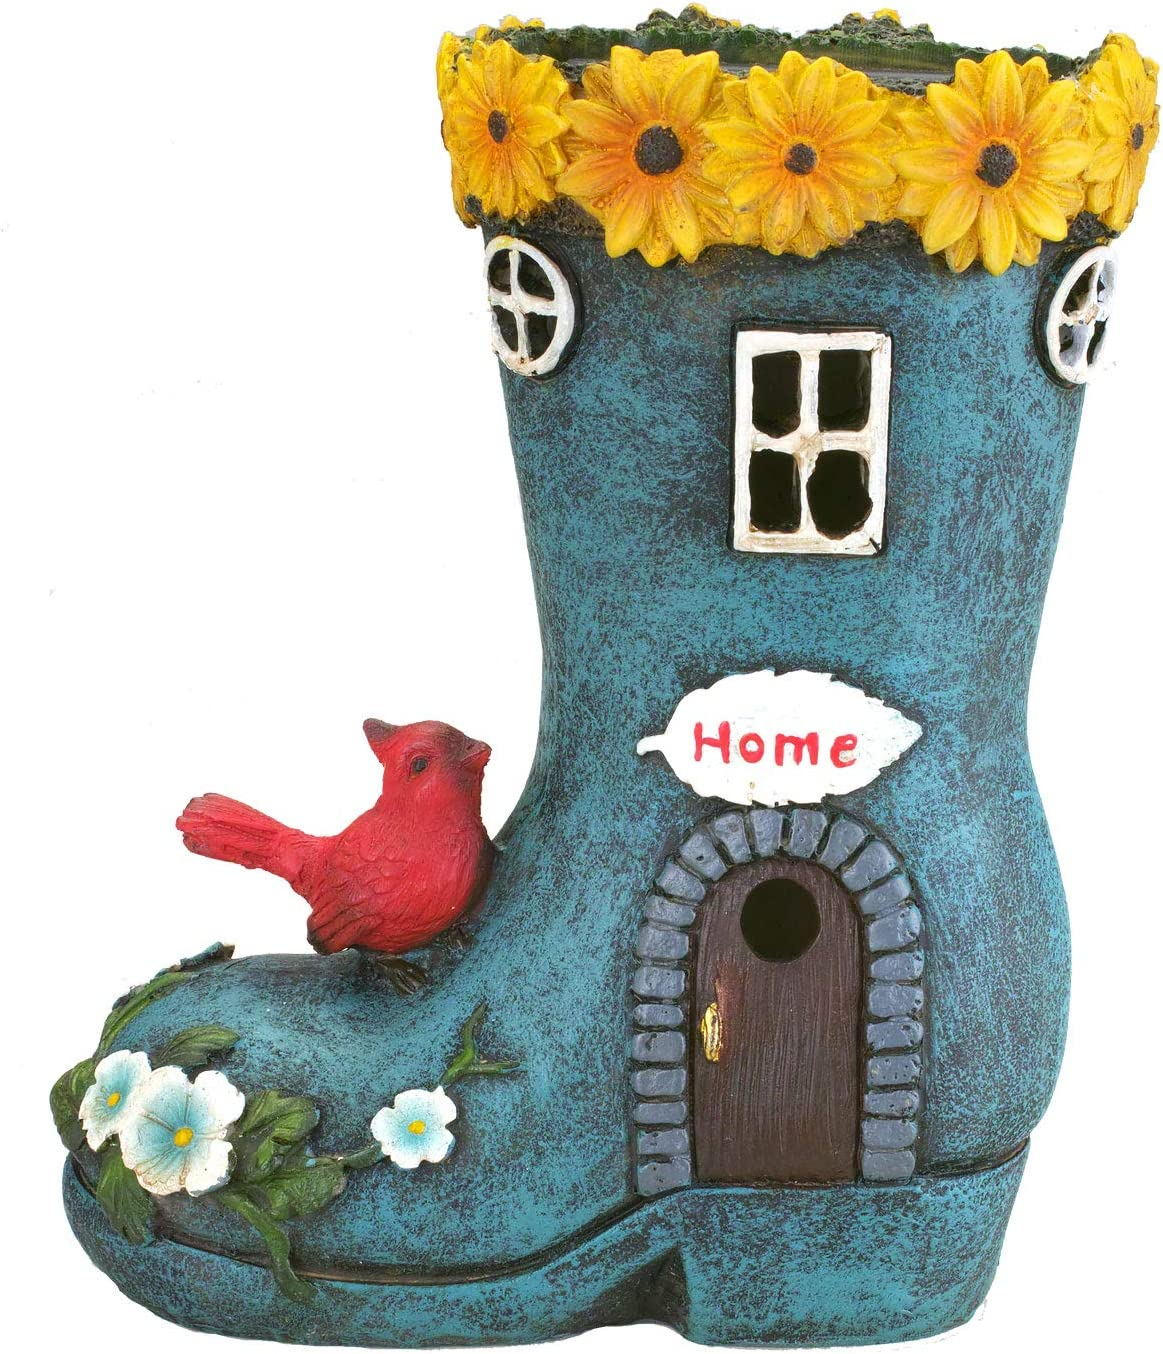 """Boot""""Home"""" Garden House Outdoor Decor with Solar Lights, Bird and  Decorative Flowers by Bo Toys"""